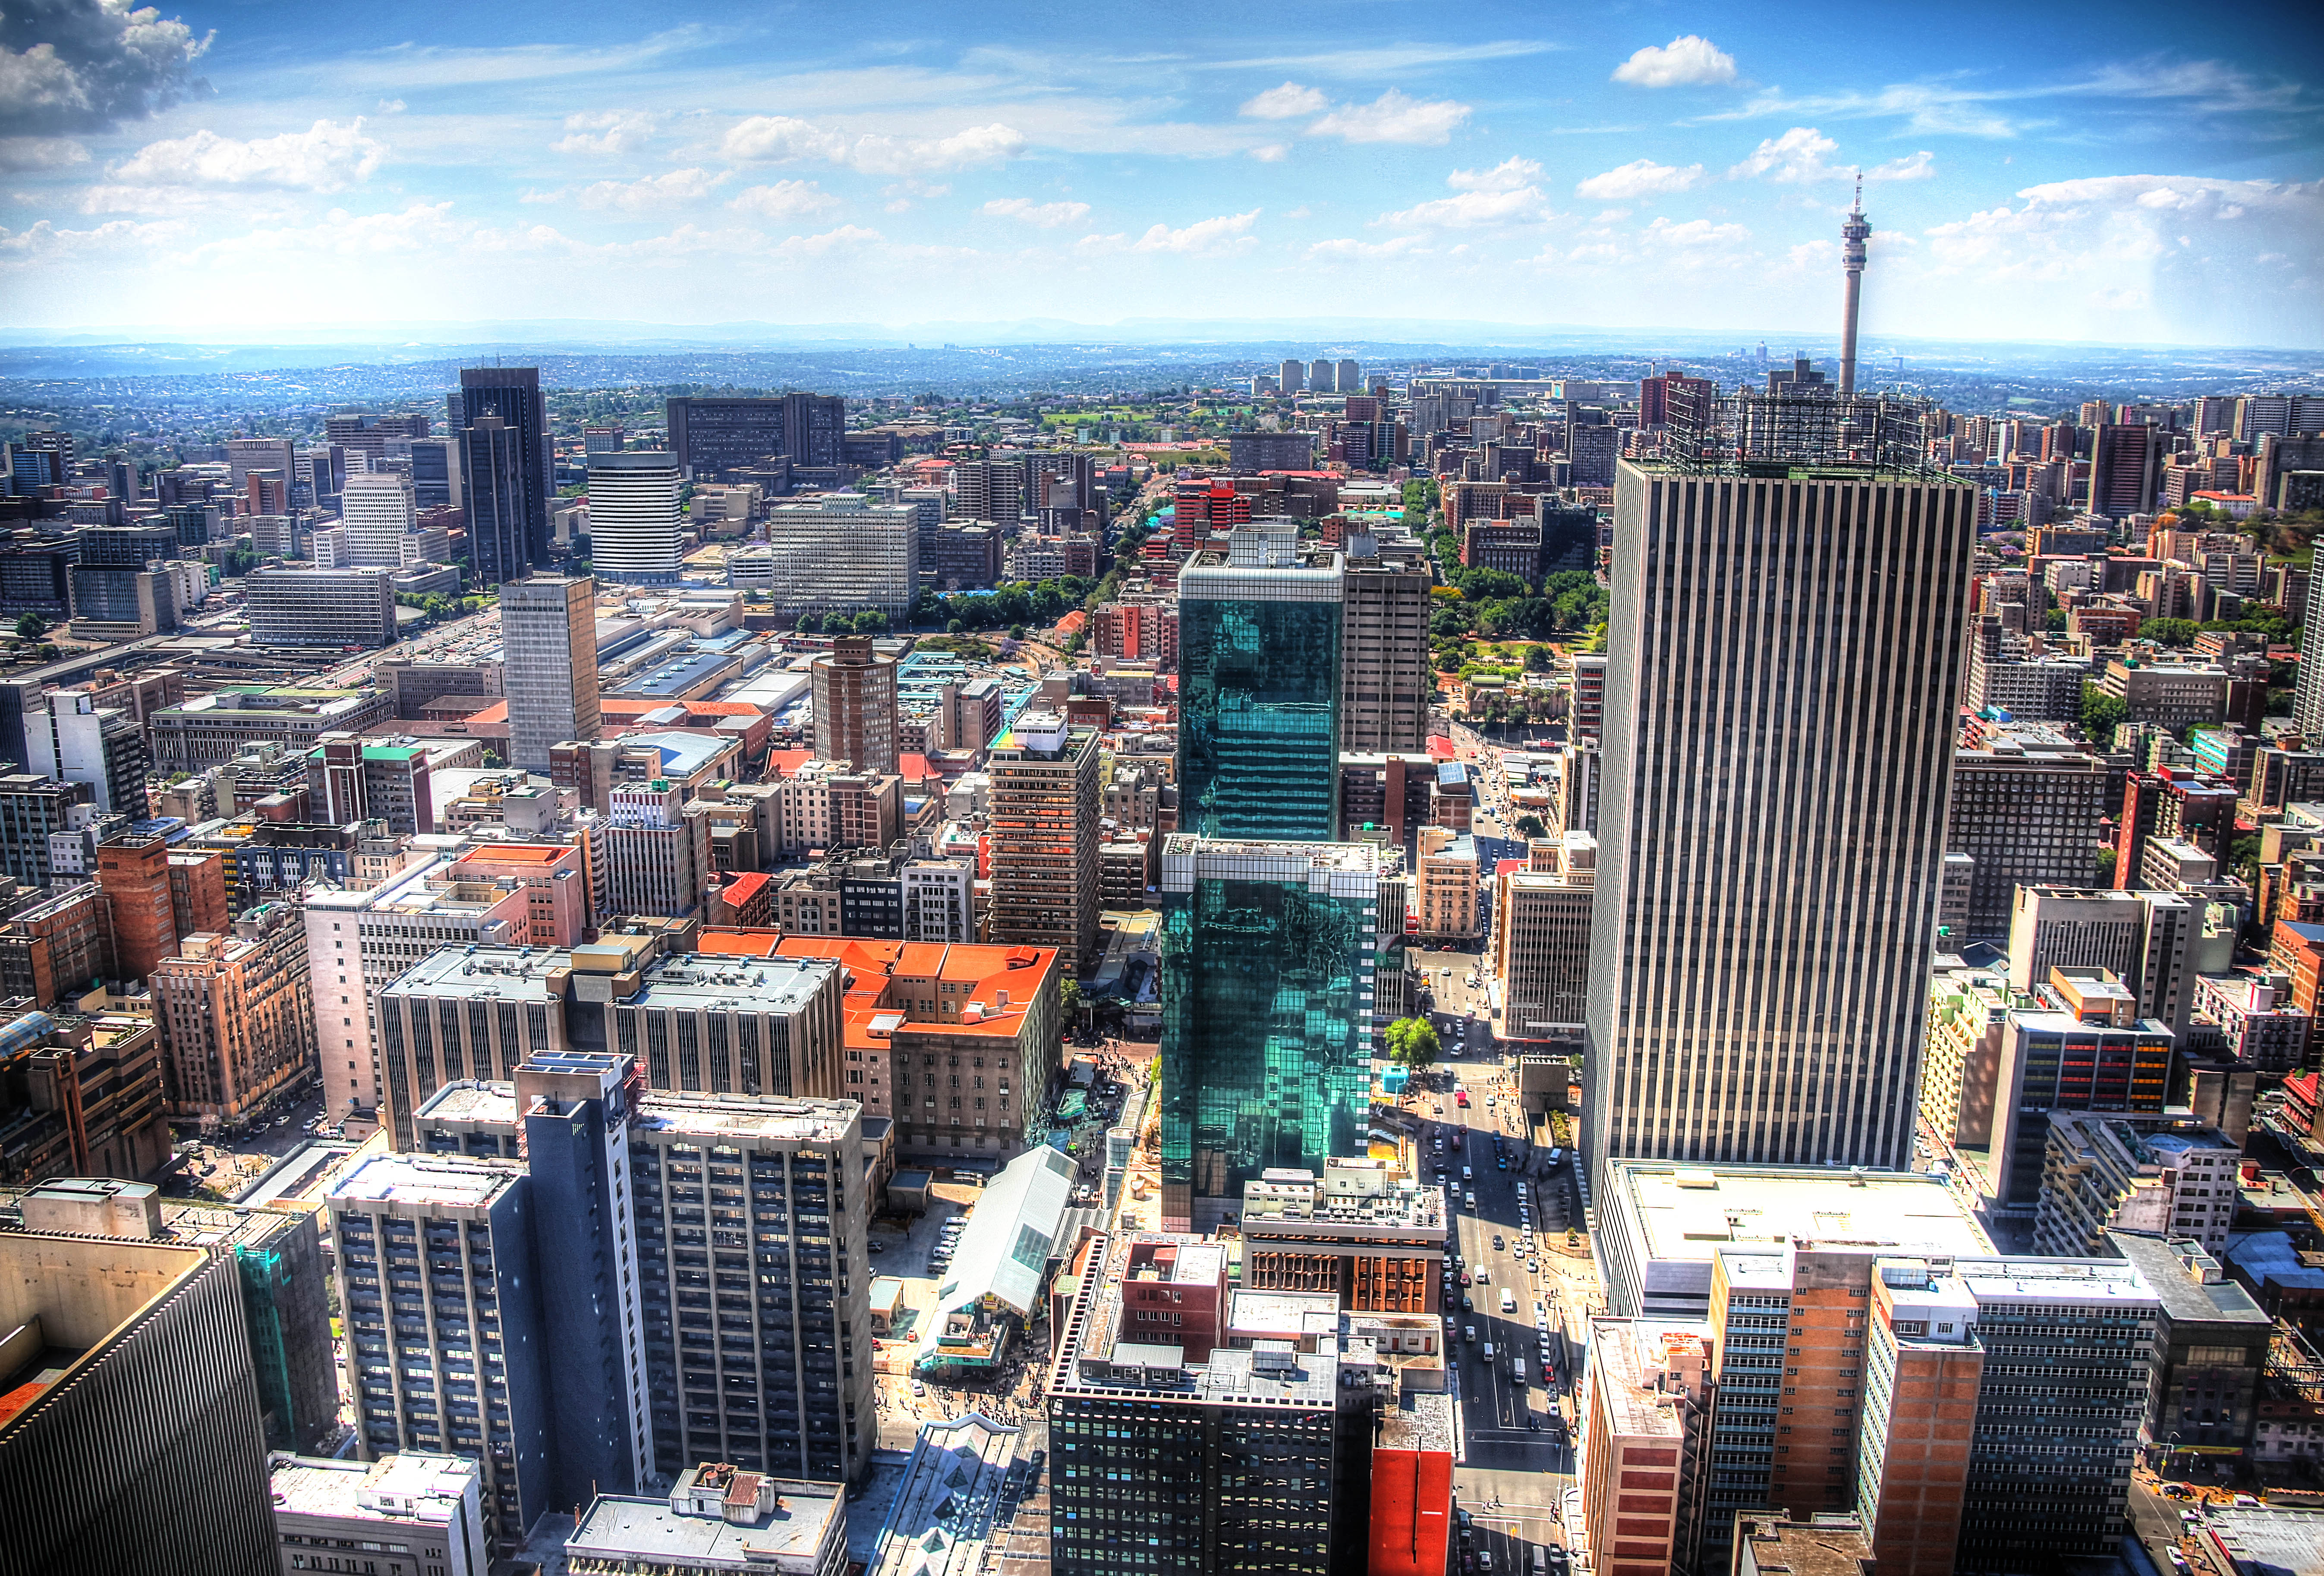 Johannesburg skyline theyre calling to me johannesburg skyline thecheapjerseys Images